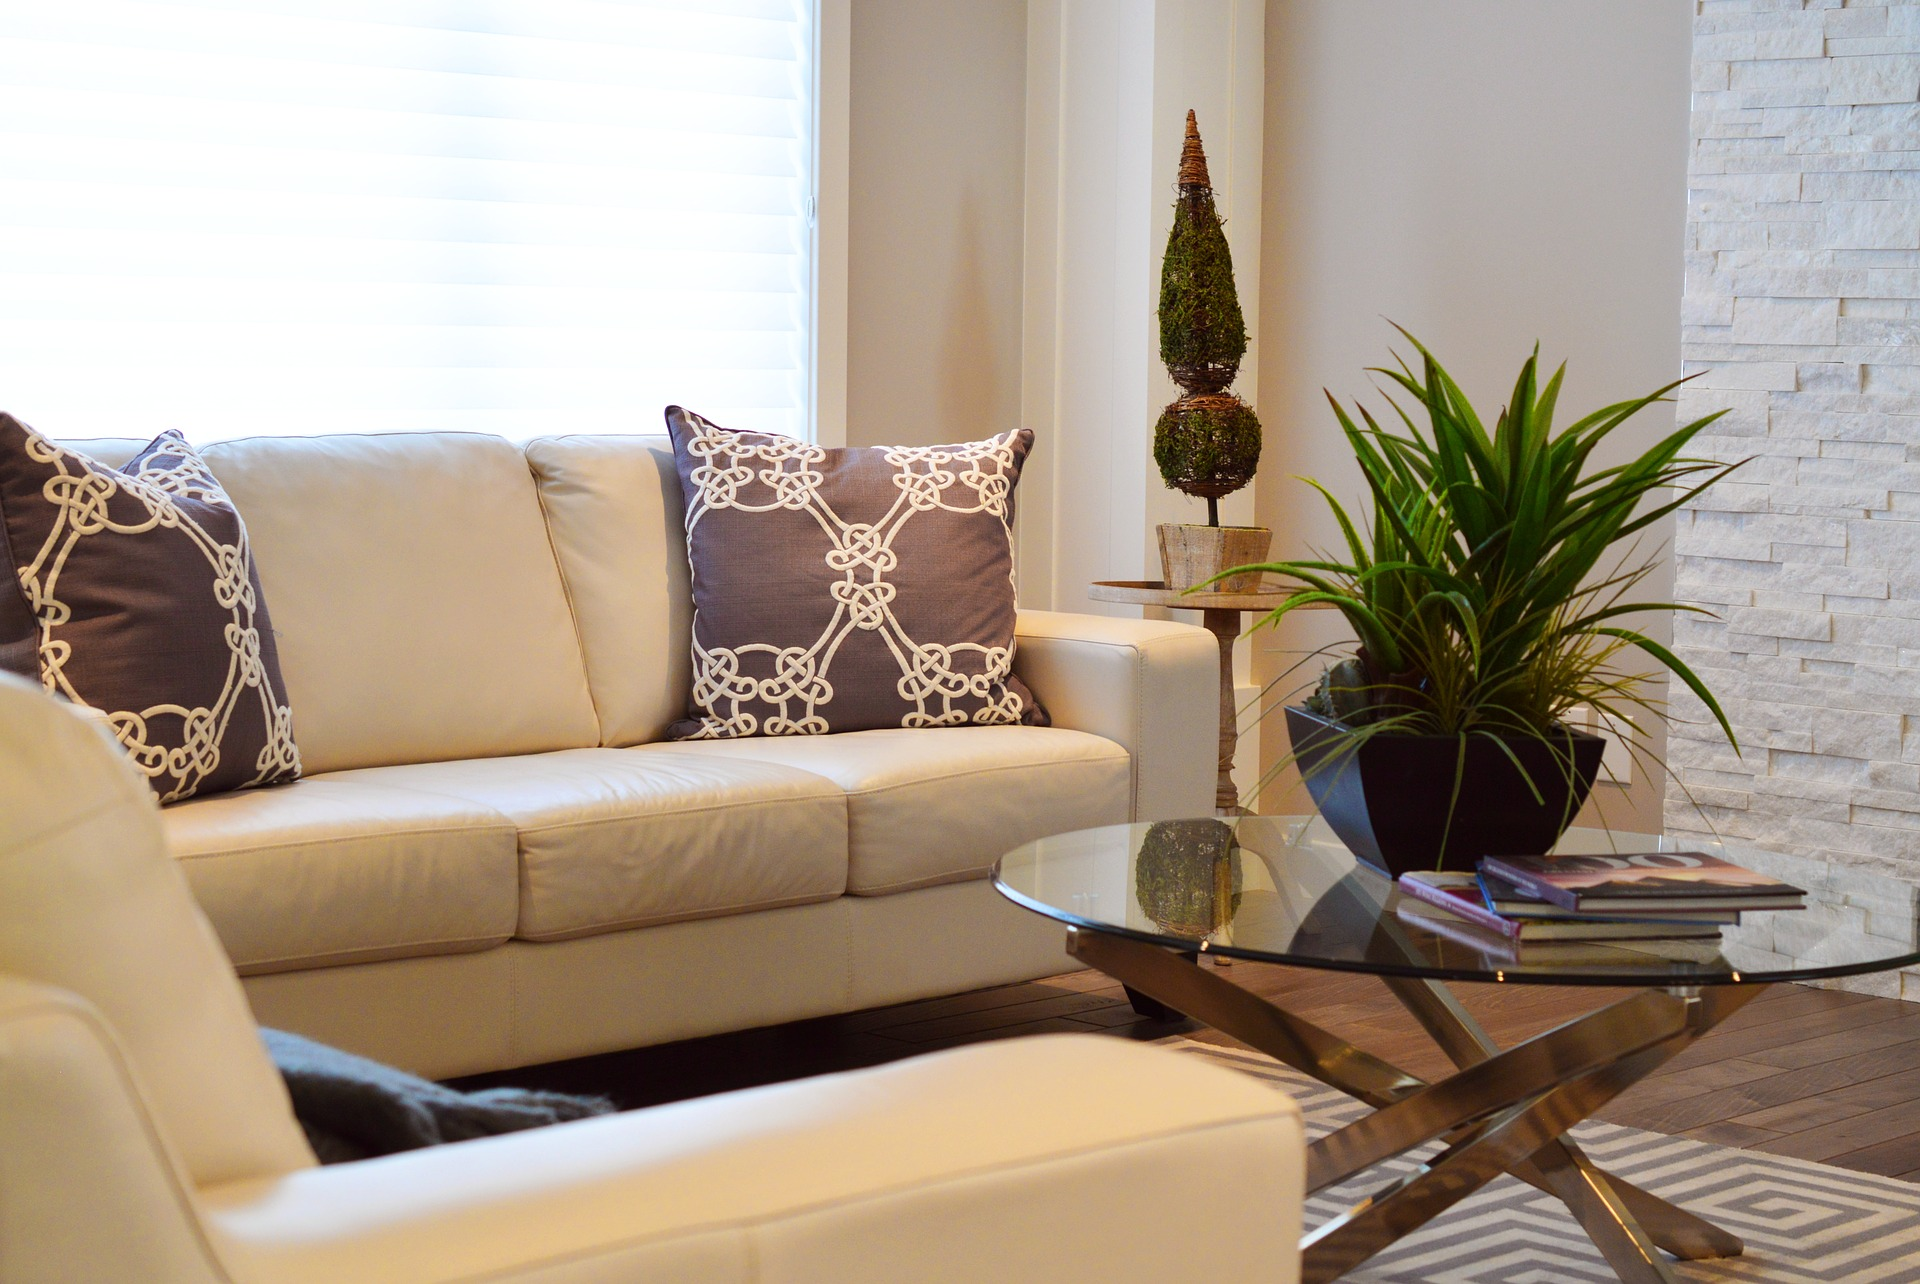 Alojamento local Doinn - home staging